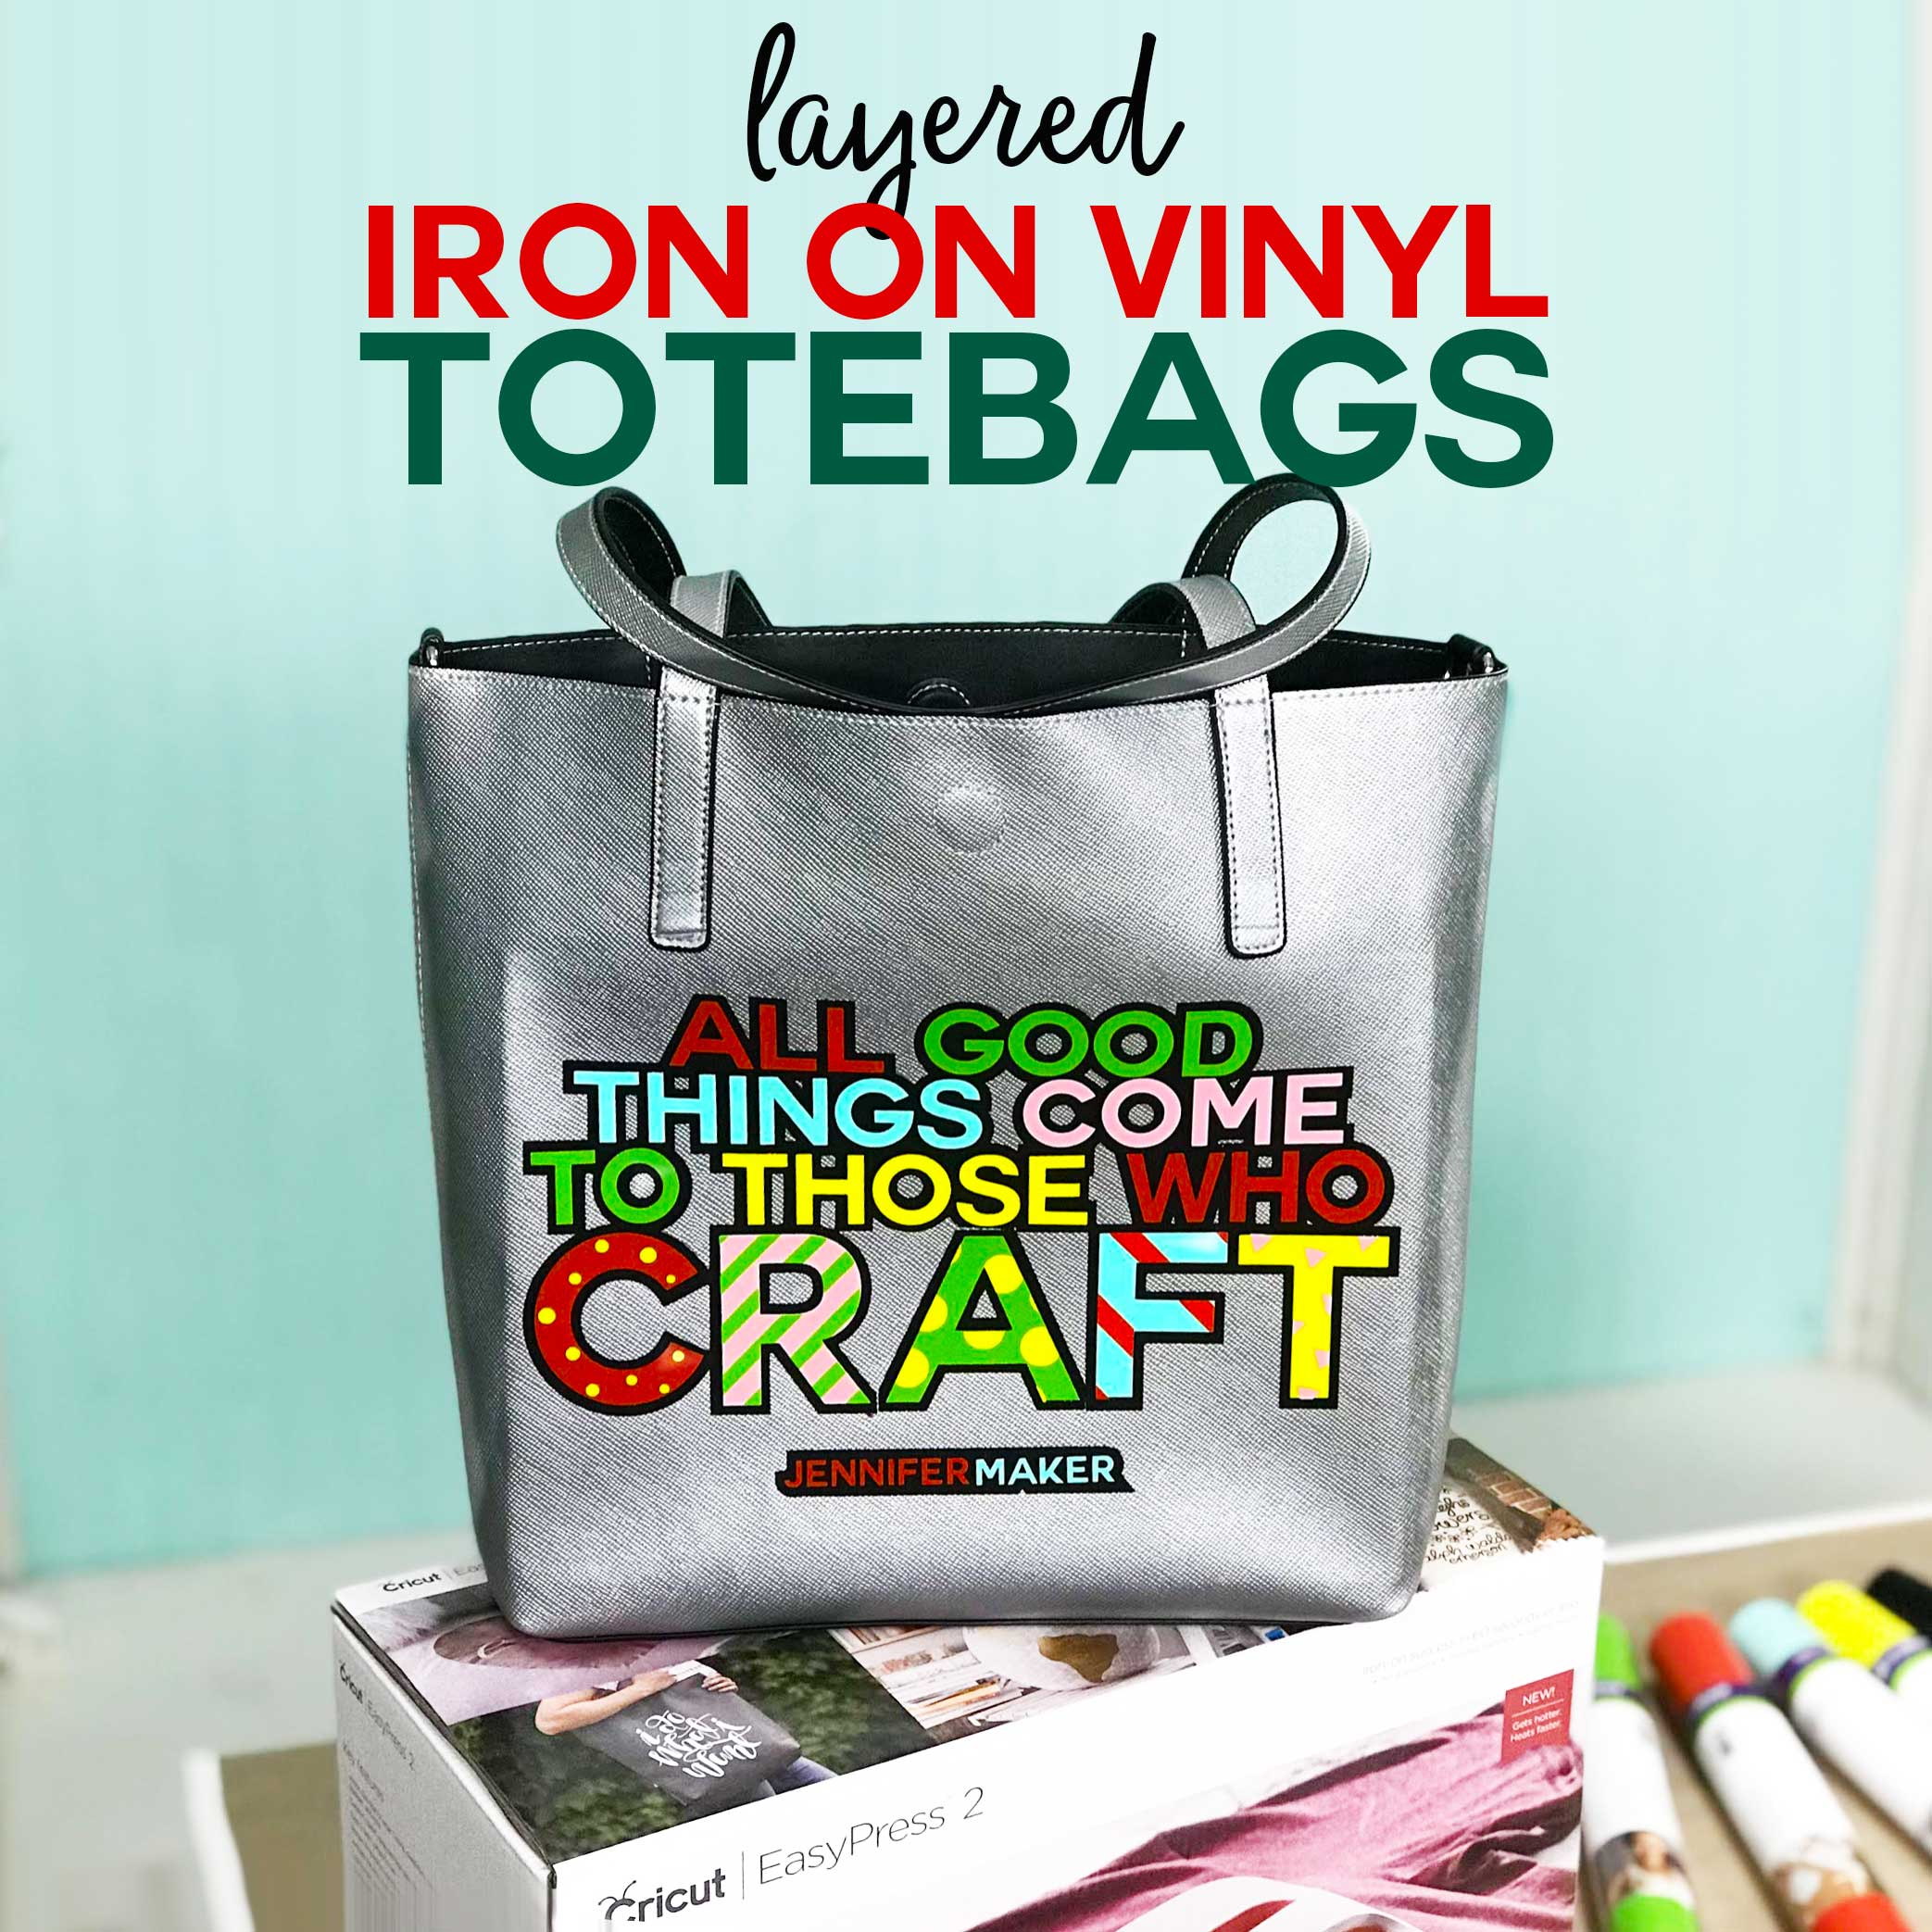 How to Layer Iron On Vinyl Totebags plus free cute bag designs #cricut #cricutmade #svgcutfile #htv #vinyl #cricutexplore